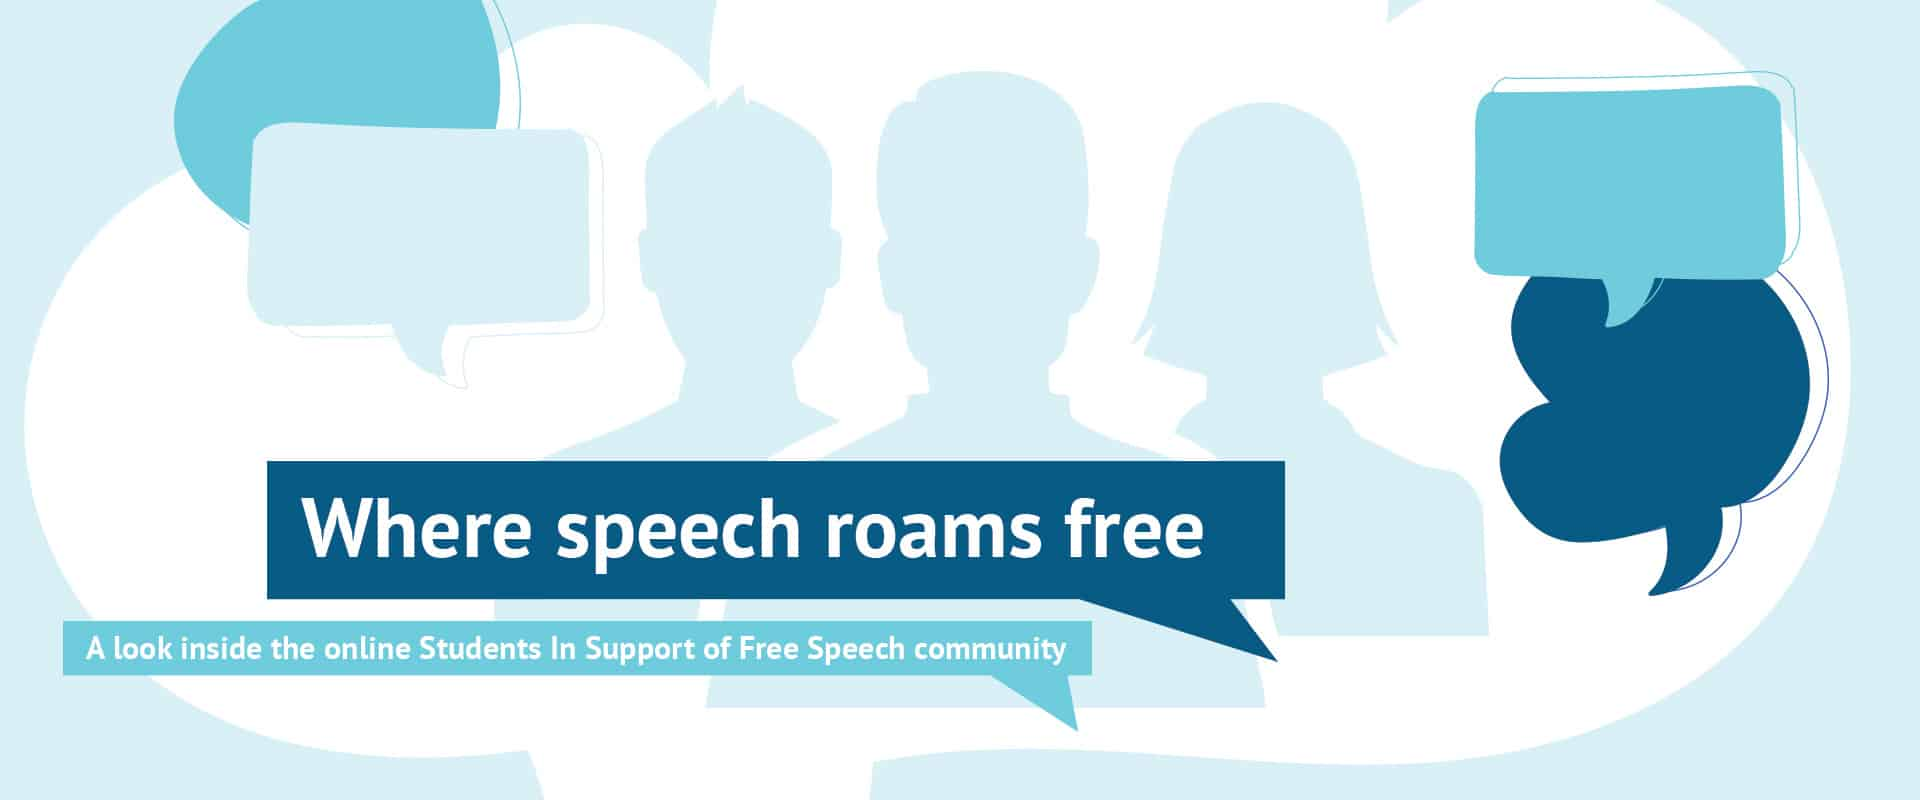 Where speech roams free